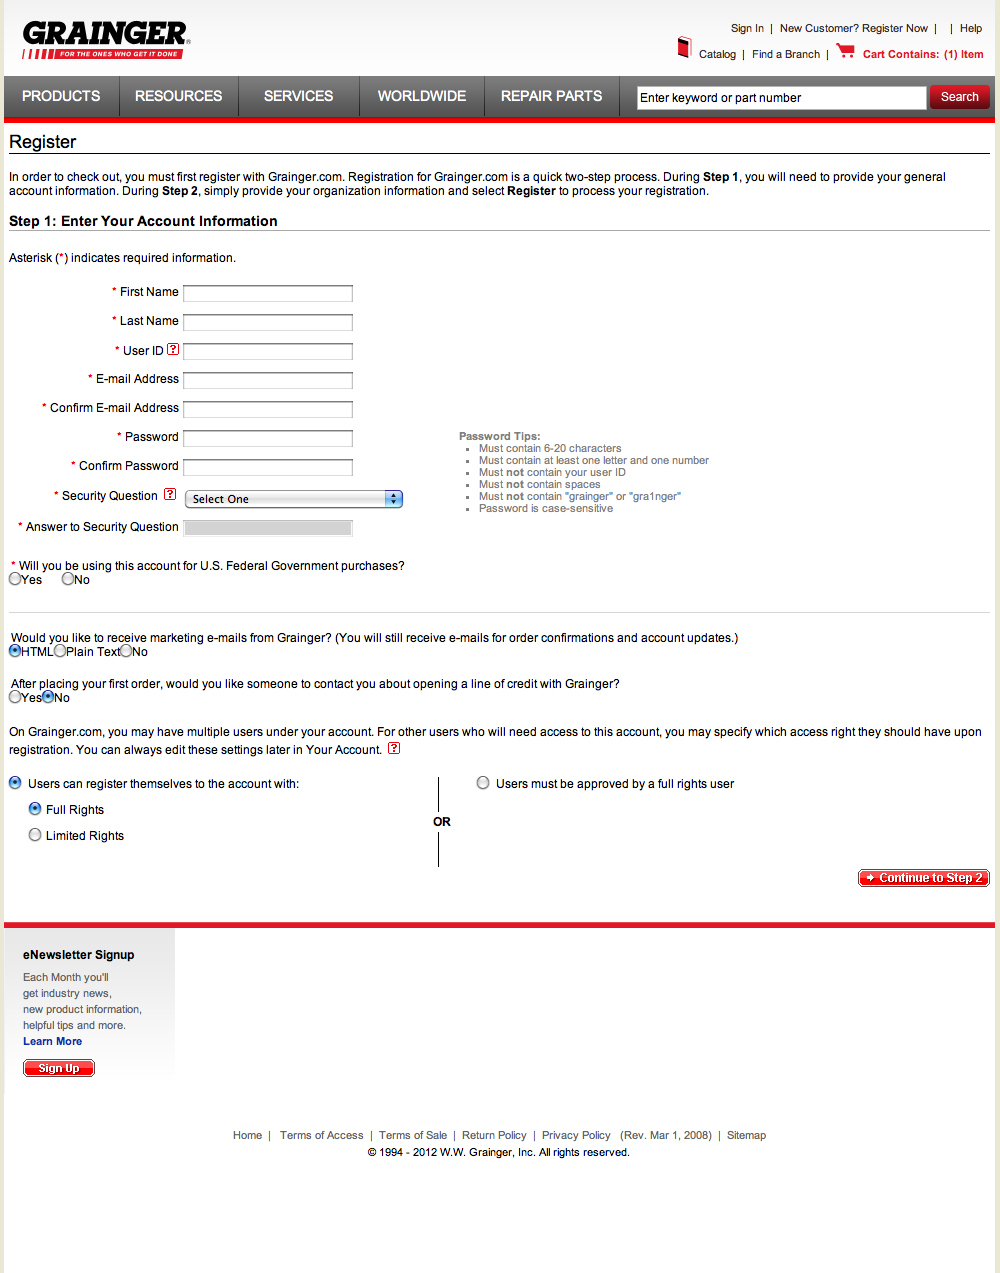 Grainger's Account Checkout Step